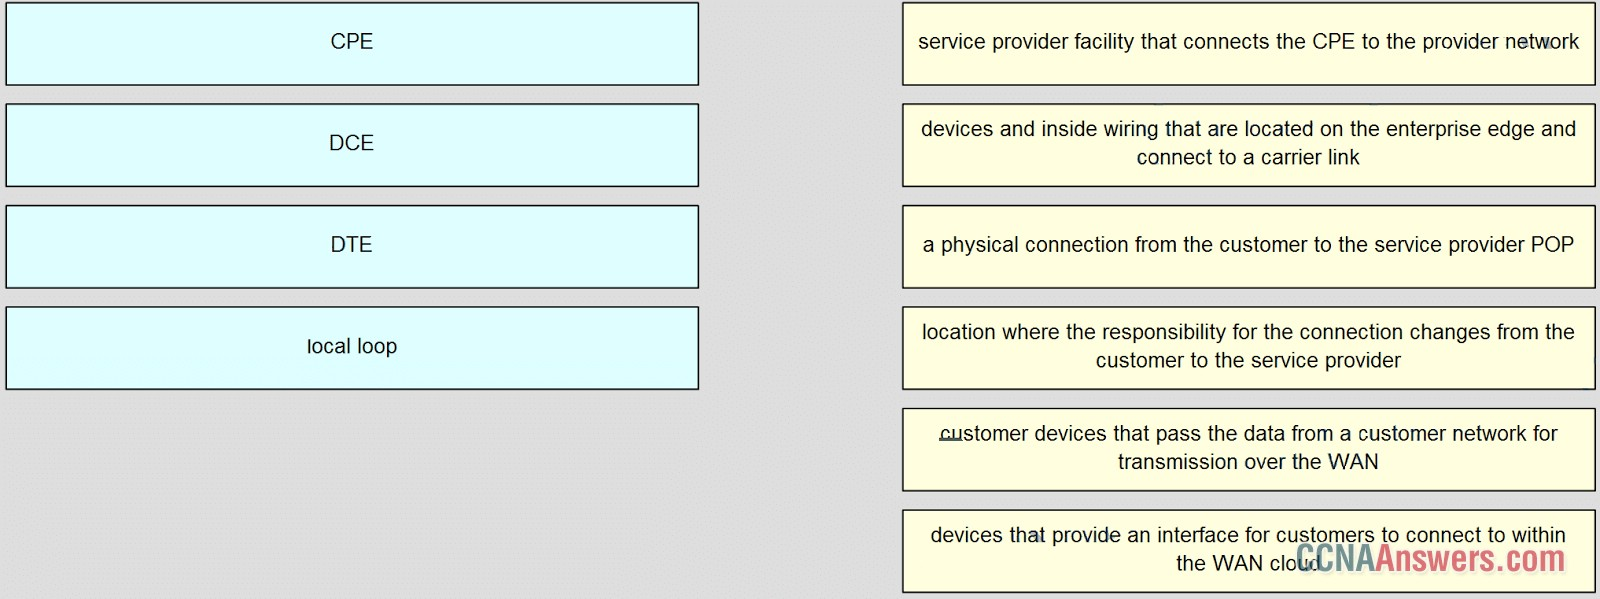 Match the type of WAN device or service to the descriptions